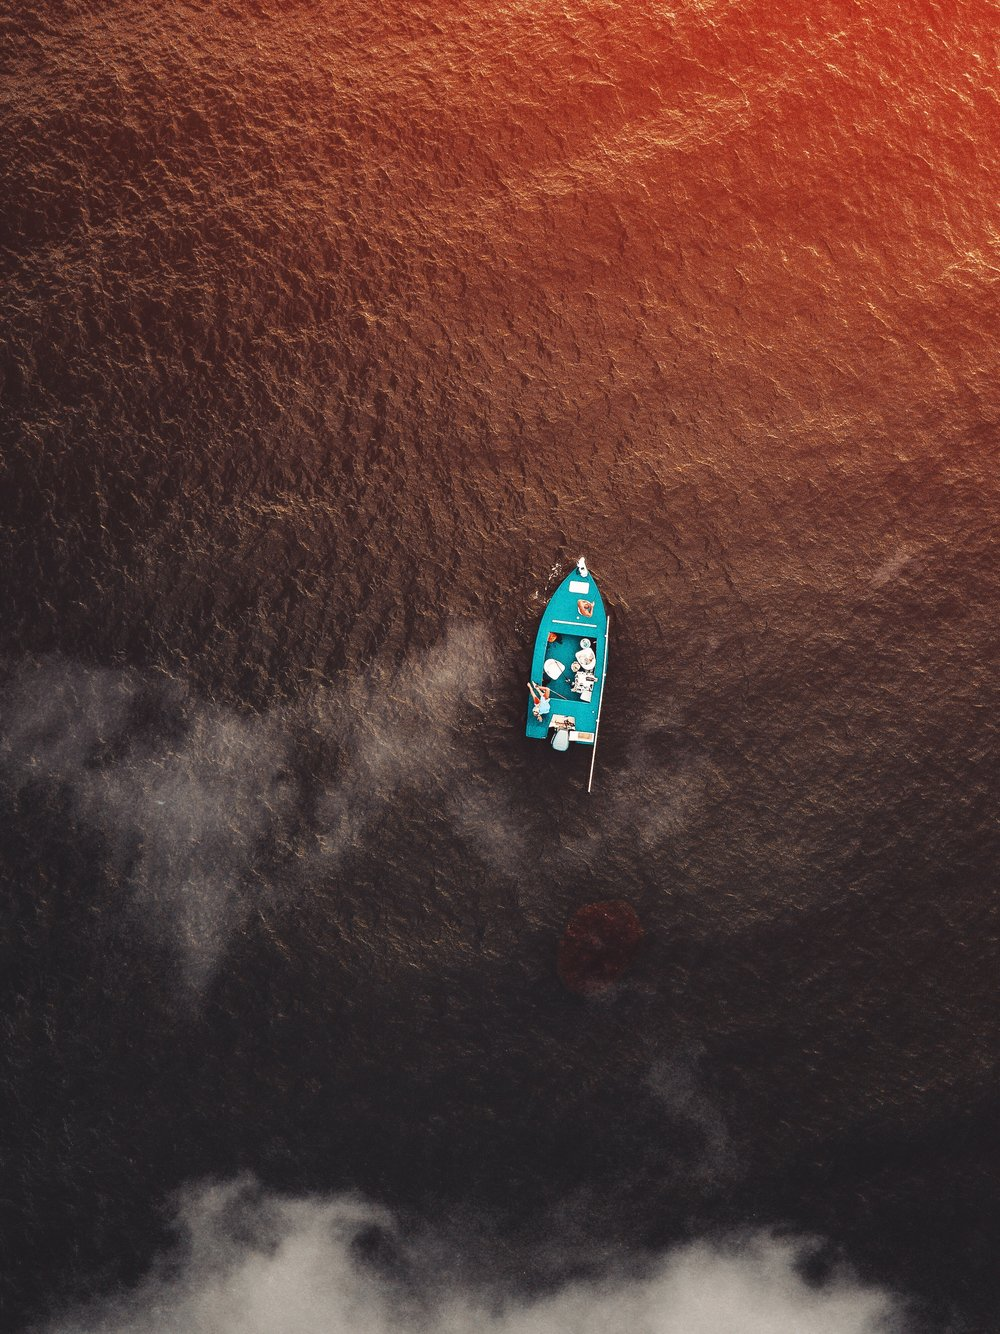 What 76 Days Lost At Sea Can Teach You About Finding Your Why - Photo by Alex Perezon Unsplash